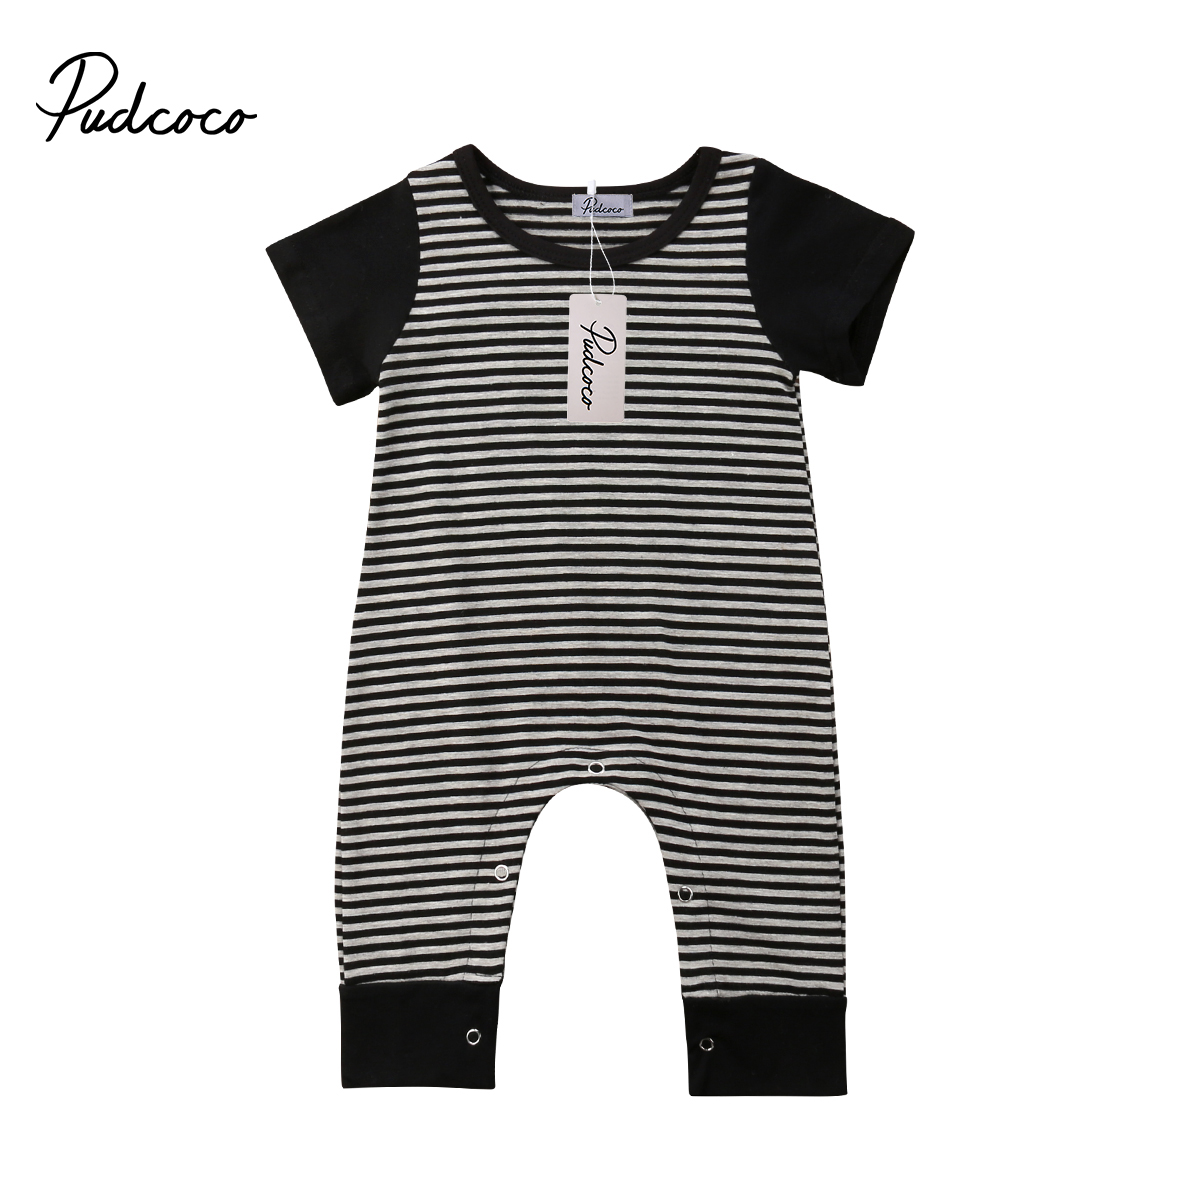 2018 Brand New Newborn Infant Toddler Baby Boy Kid Overall Romper Jumpsuit Striped Short Sleeve Clothes Patchwork Summer Outfits(China)